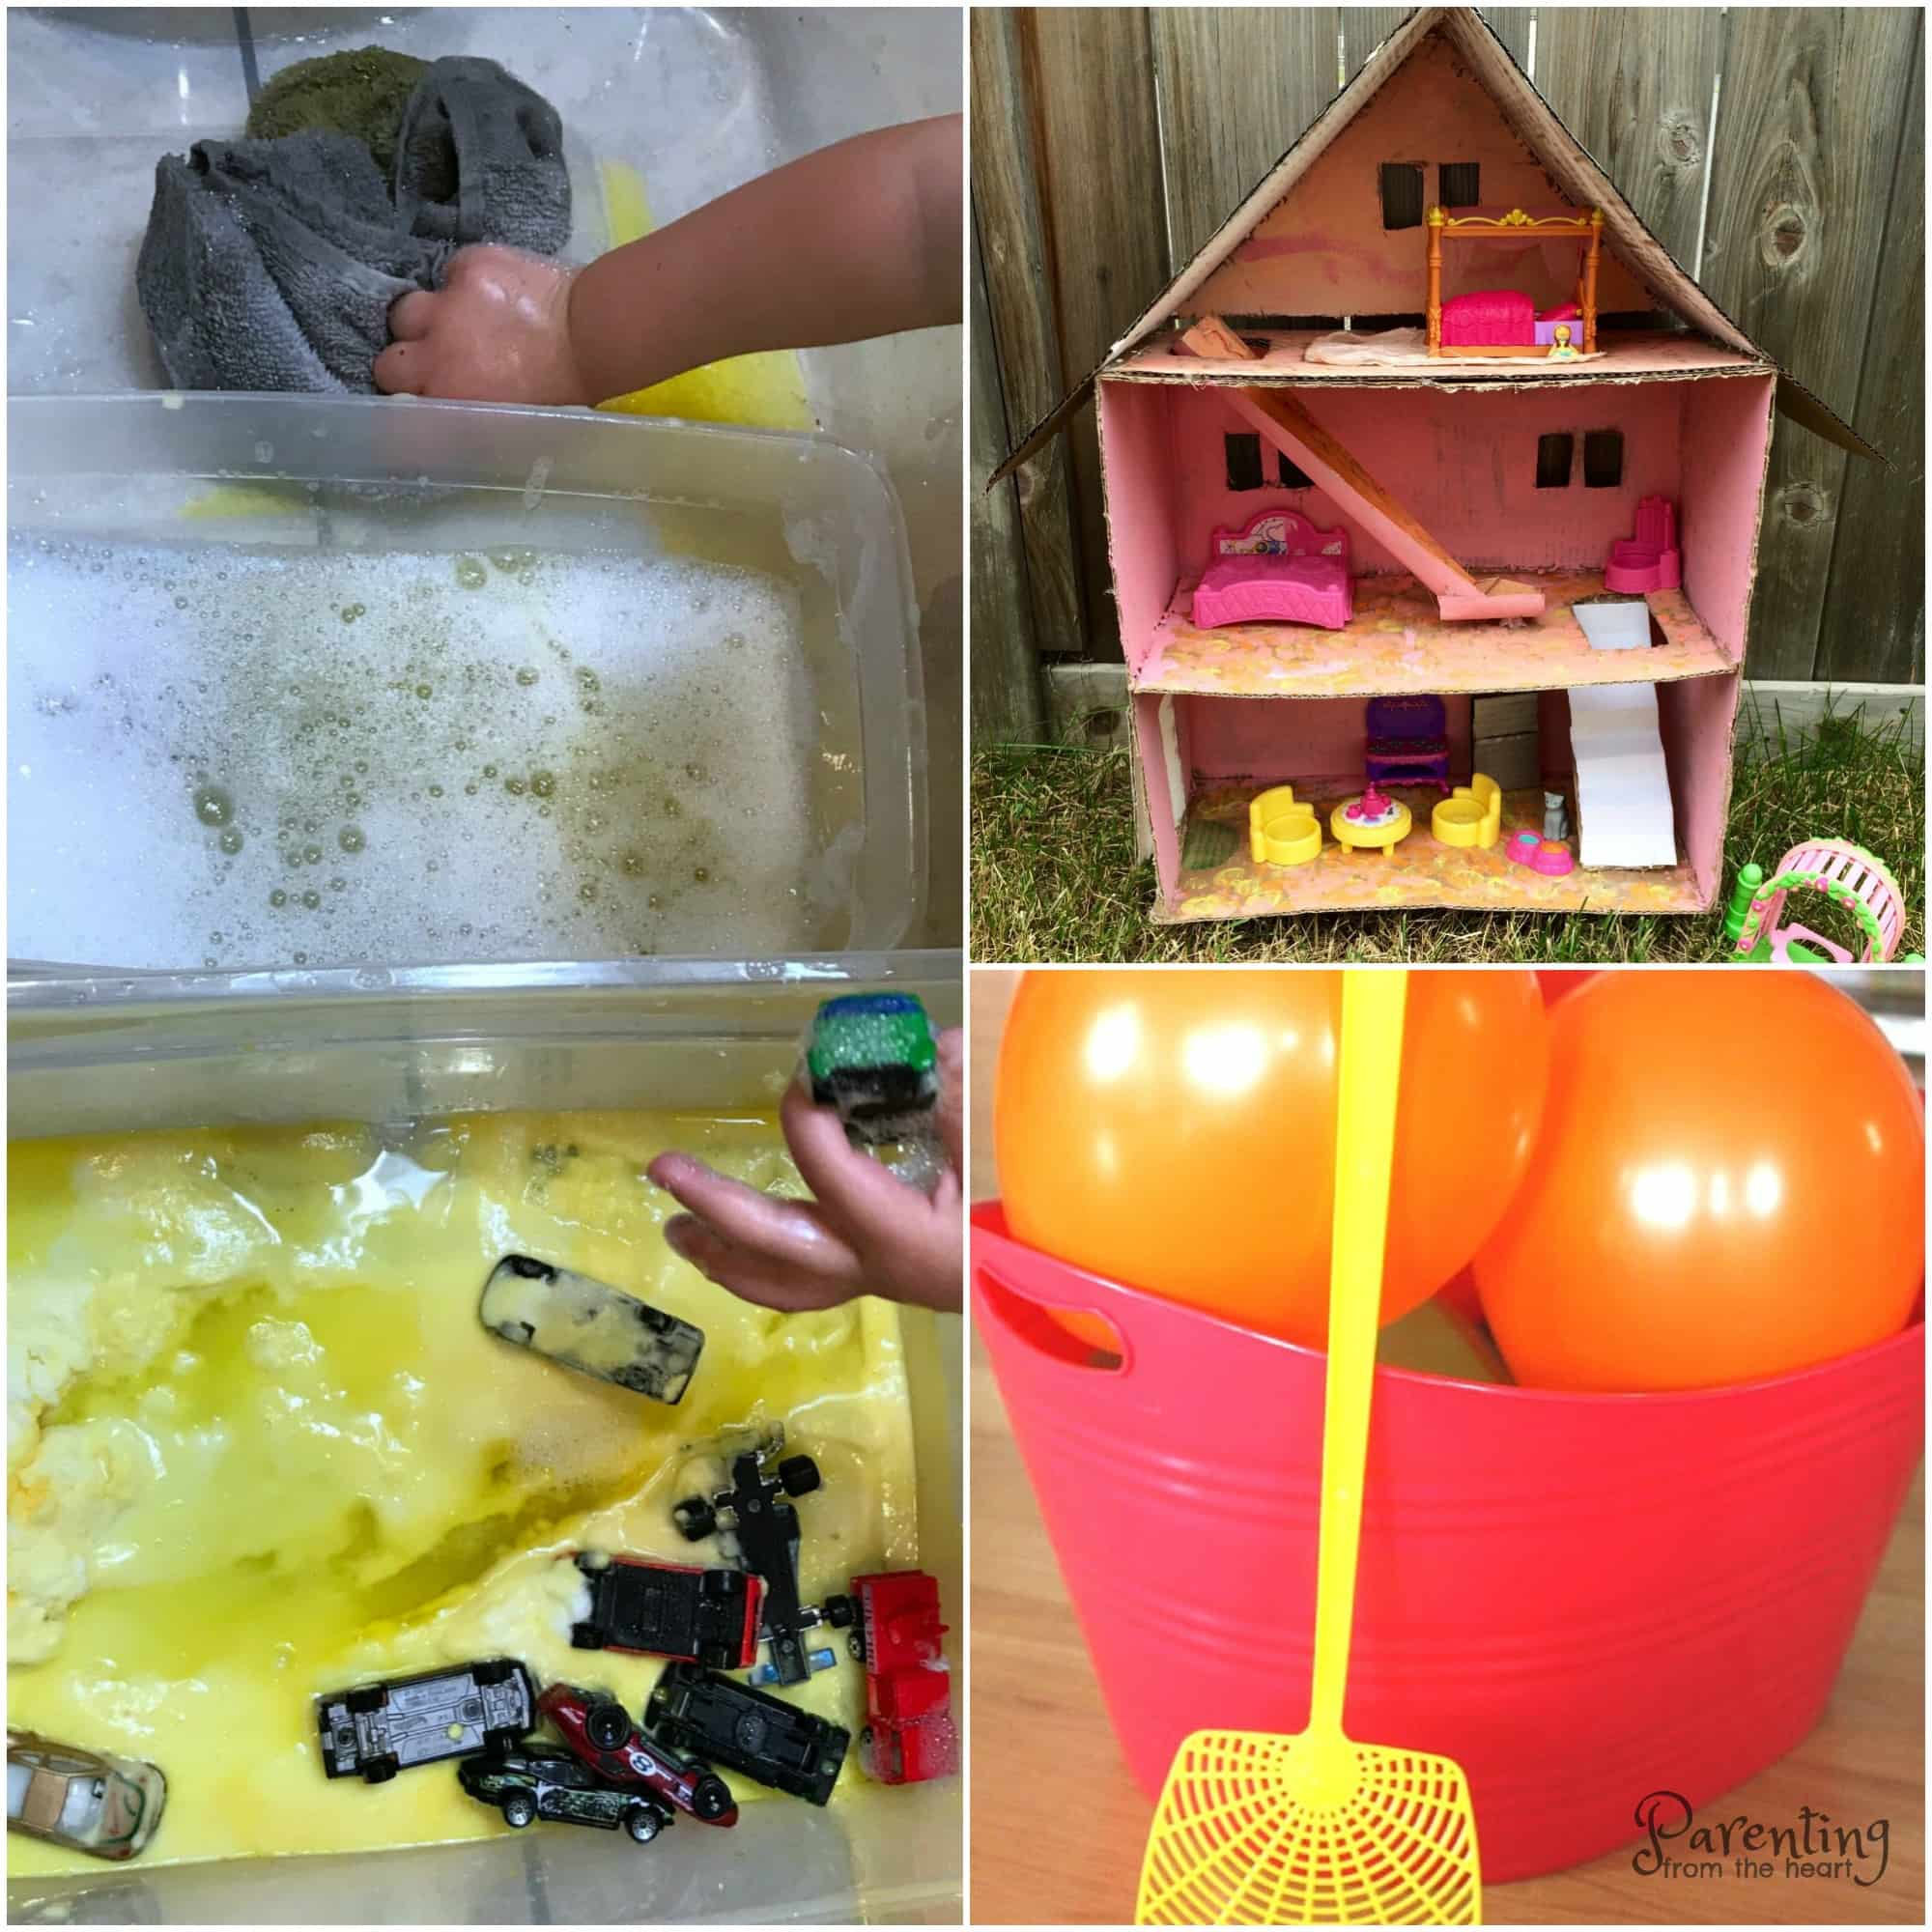 Rainy Day Toddler Activities for Those Days You're Stuck Inside